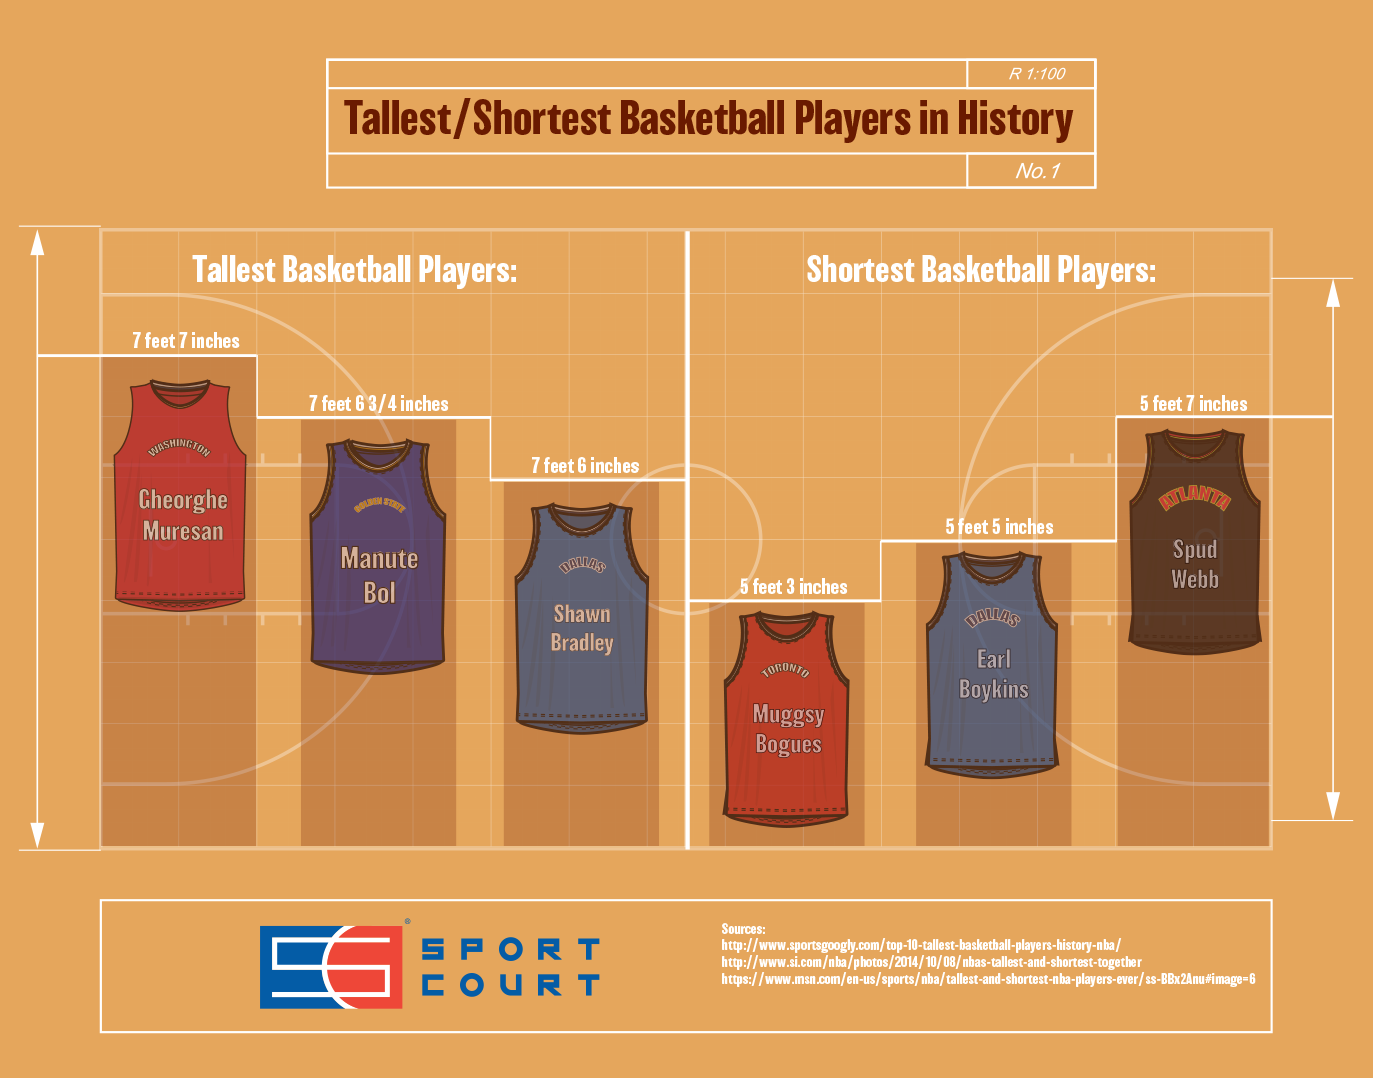 Tallest/Shortest Basketball Players in History